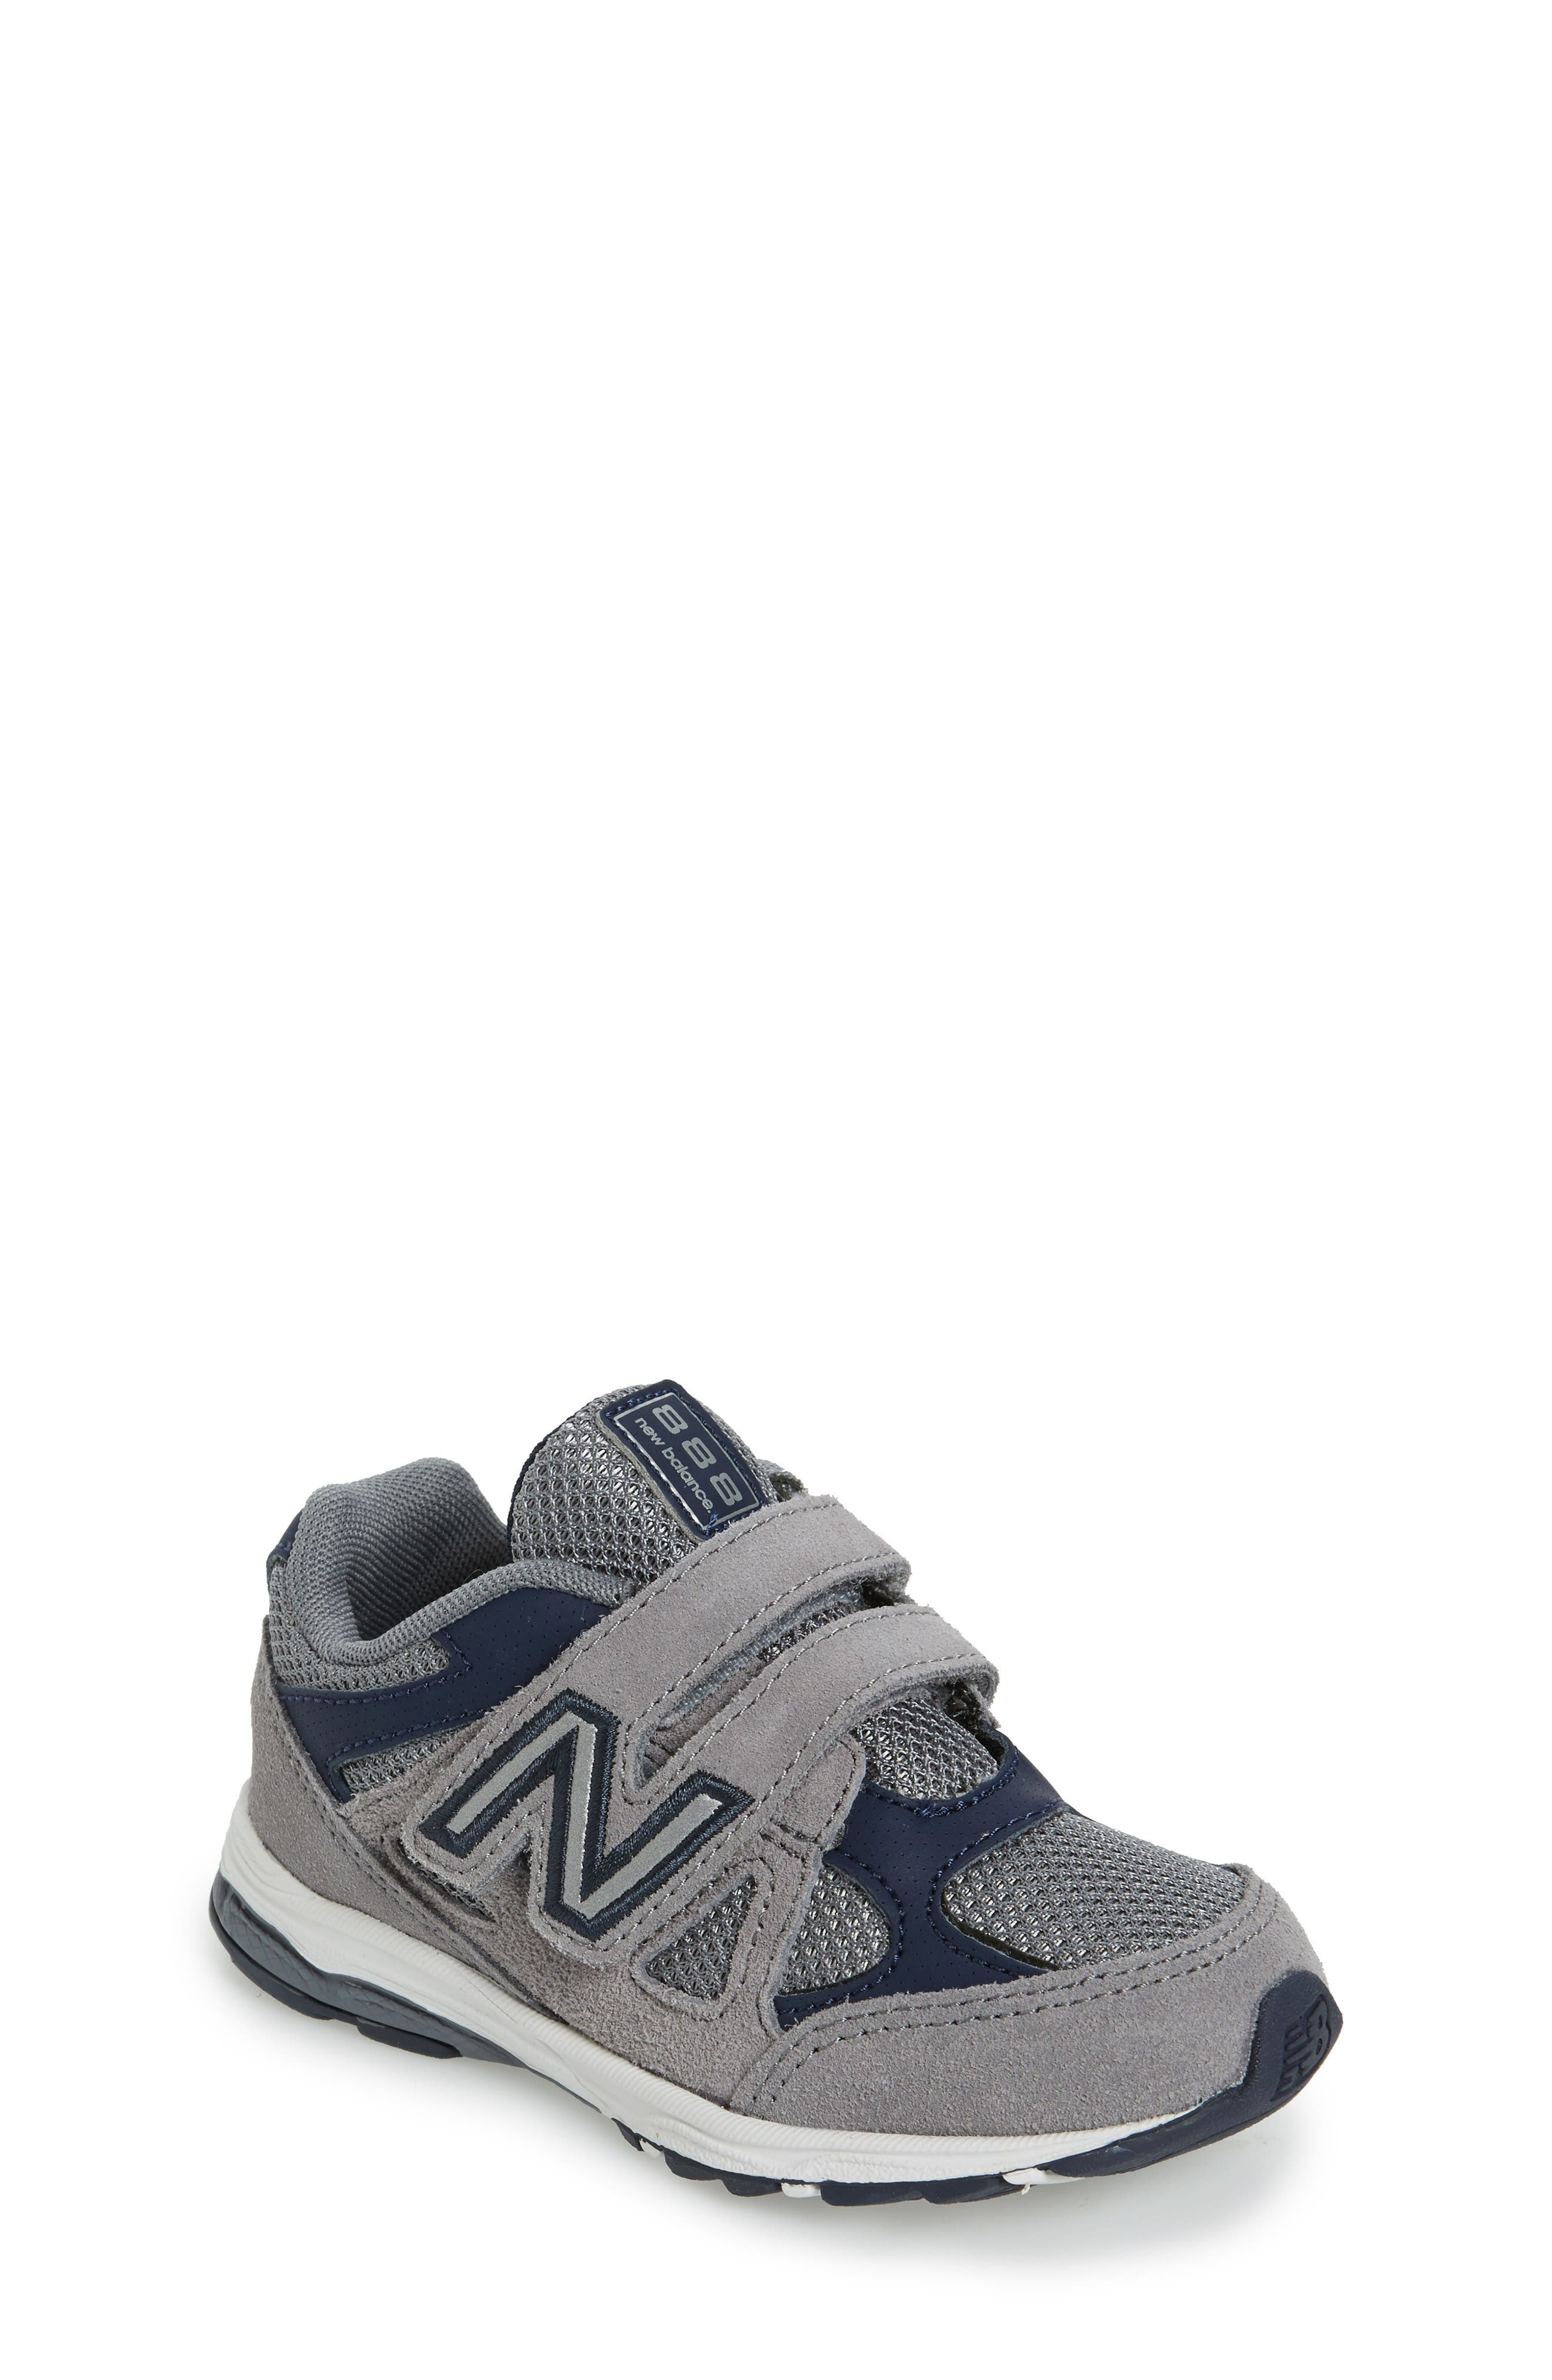 New Balance 888 Sneaker (Baby, Walker, Toddler & Little Kid)